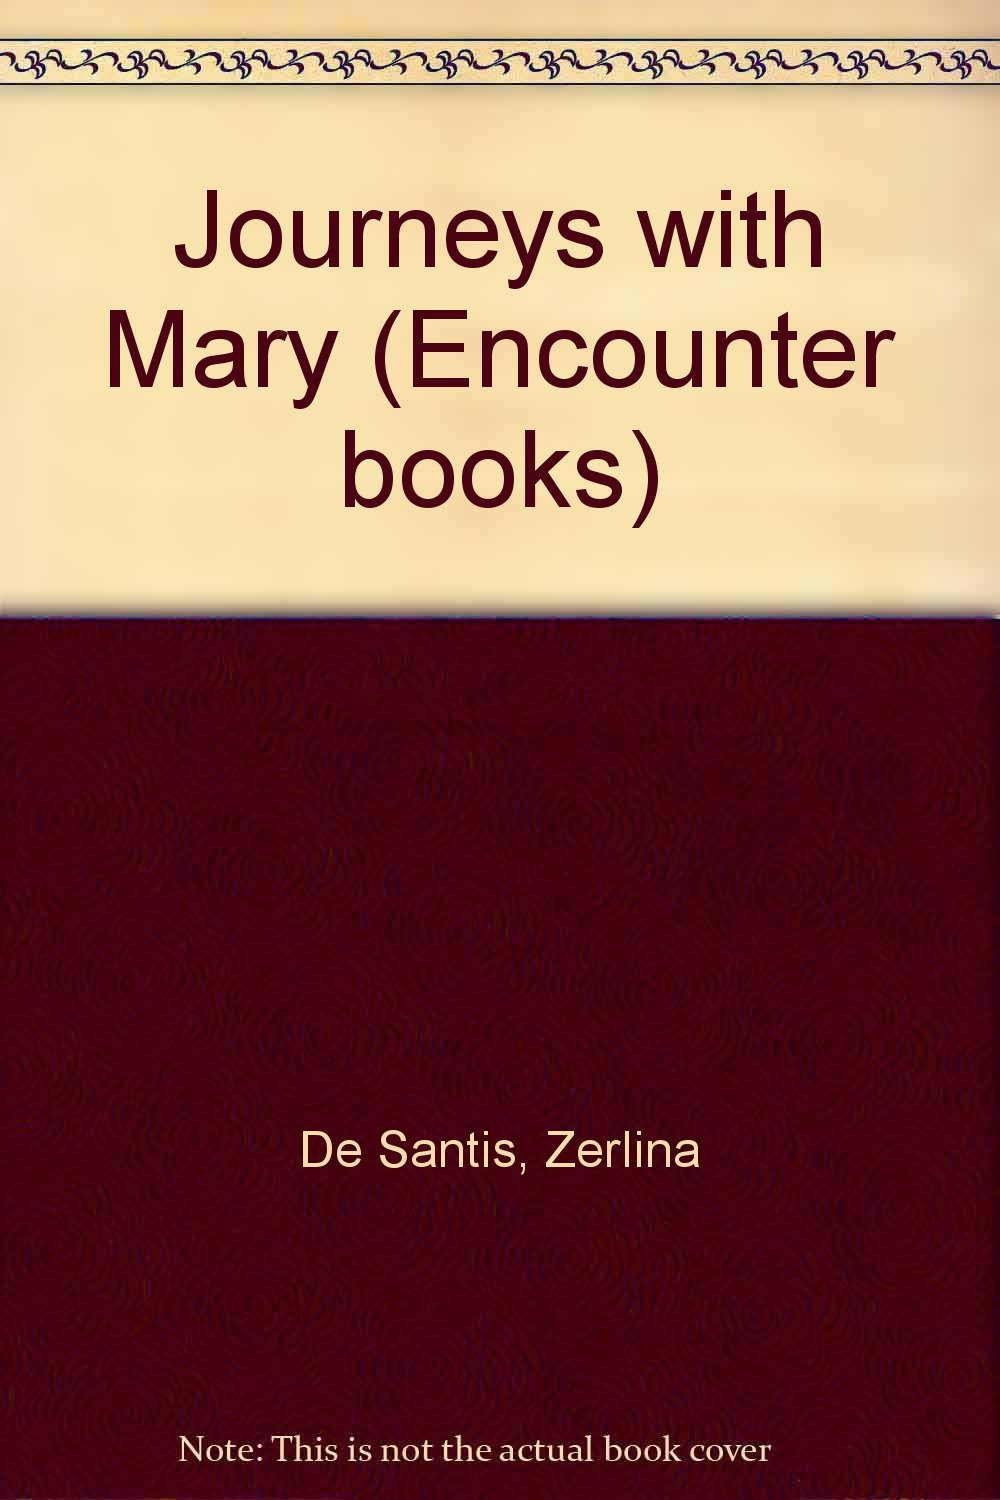 Journeys with Mary (Encounter books)